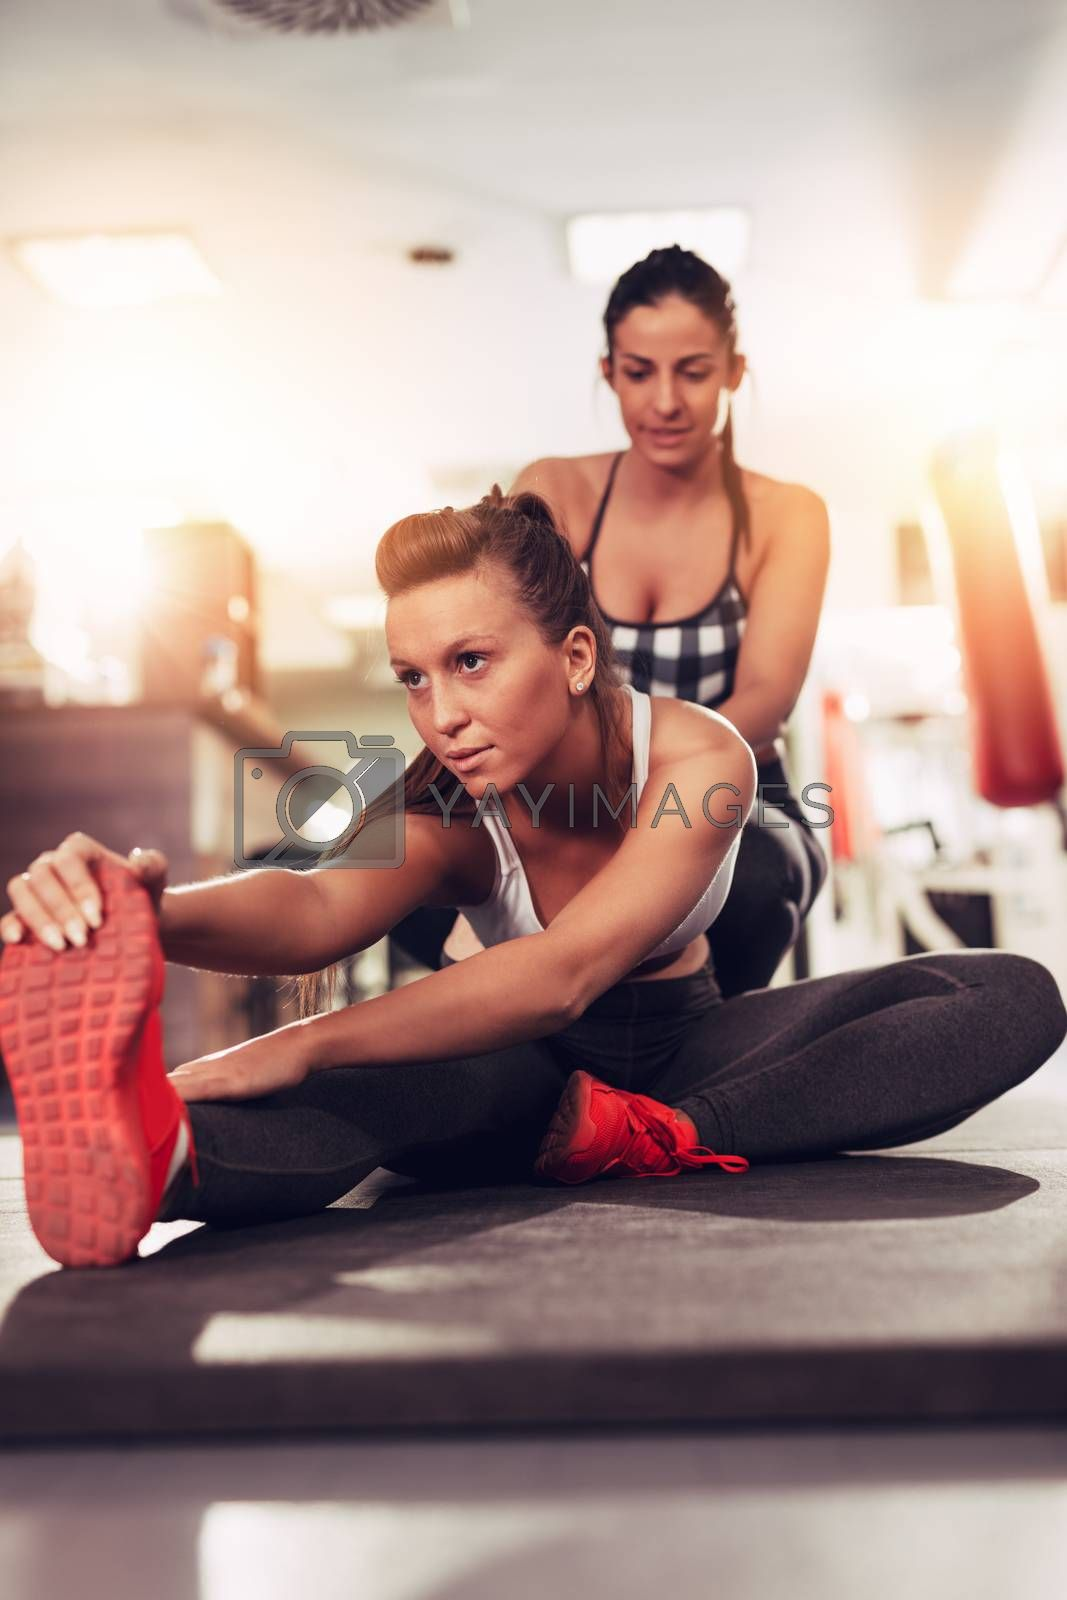 Beautiful young woman exercising at the gym with a female personal trainer.